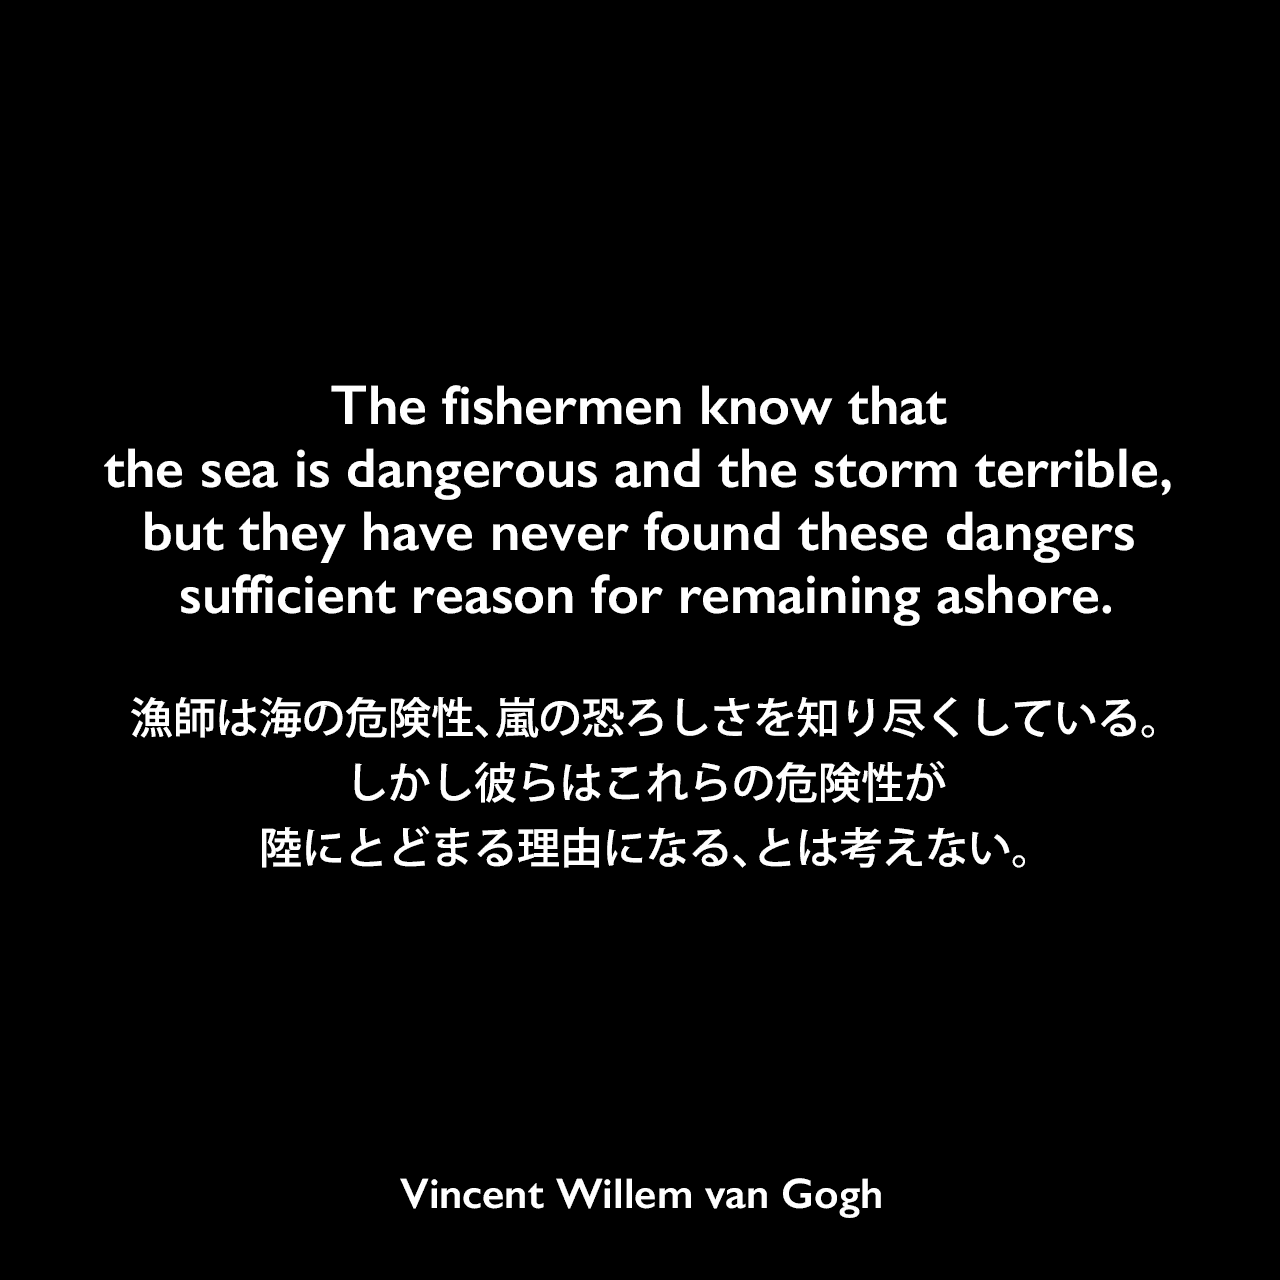 The fishermen know that the sea is dangerous and the storm terrible, but they have never found these dangers sufficient reason for remaining ashore.漁師は海の危険性、嵐の恐ろしさを知り尽くしている。しかし彼らはこれらの危険性が陸にとどまる理由になる、とは考えない。Vincent Willem van Gogh